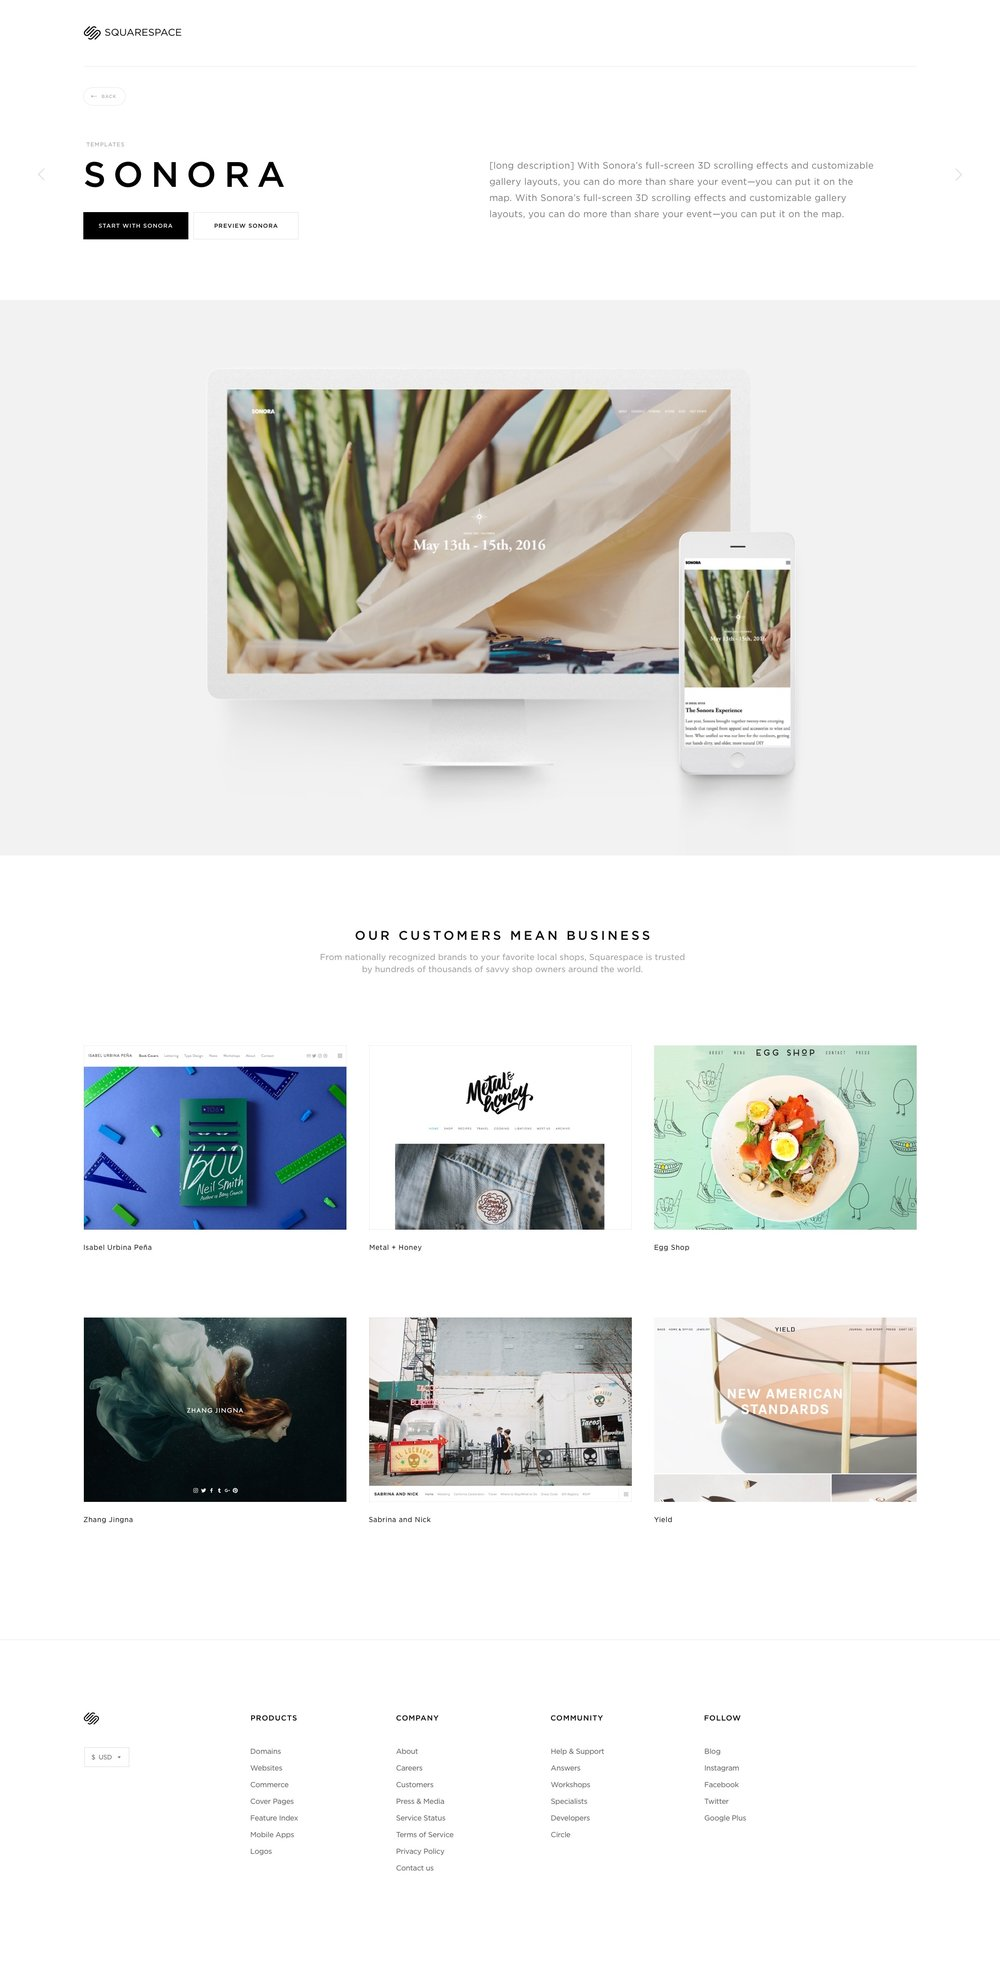 afr_p1_squarespace_template_store_3.jpg